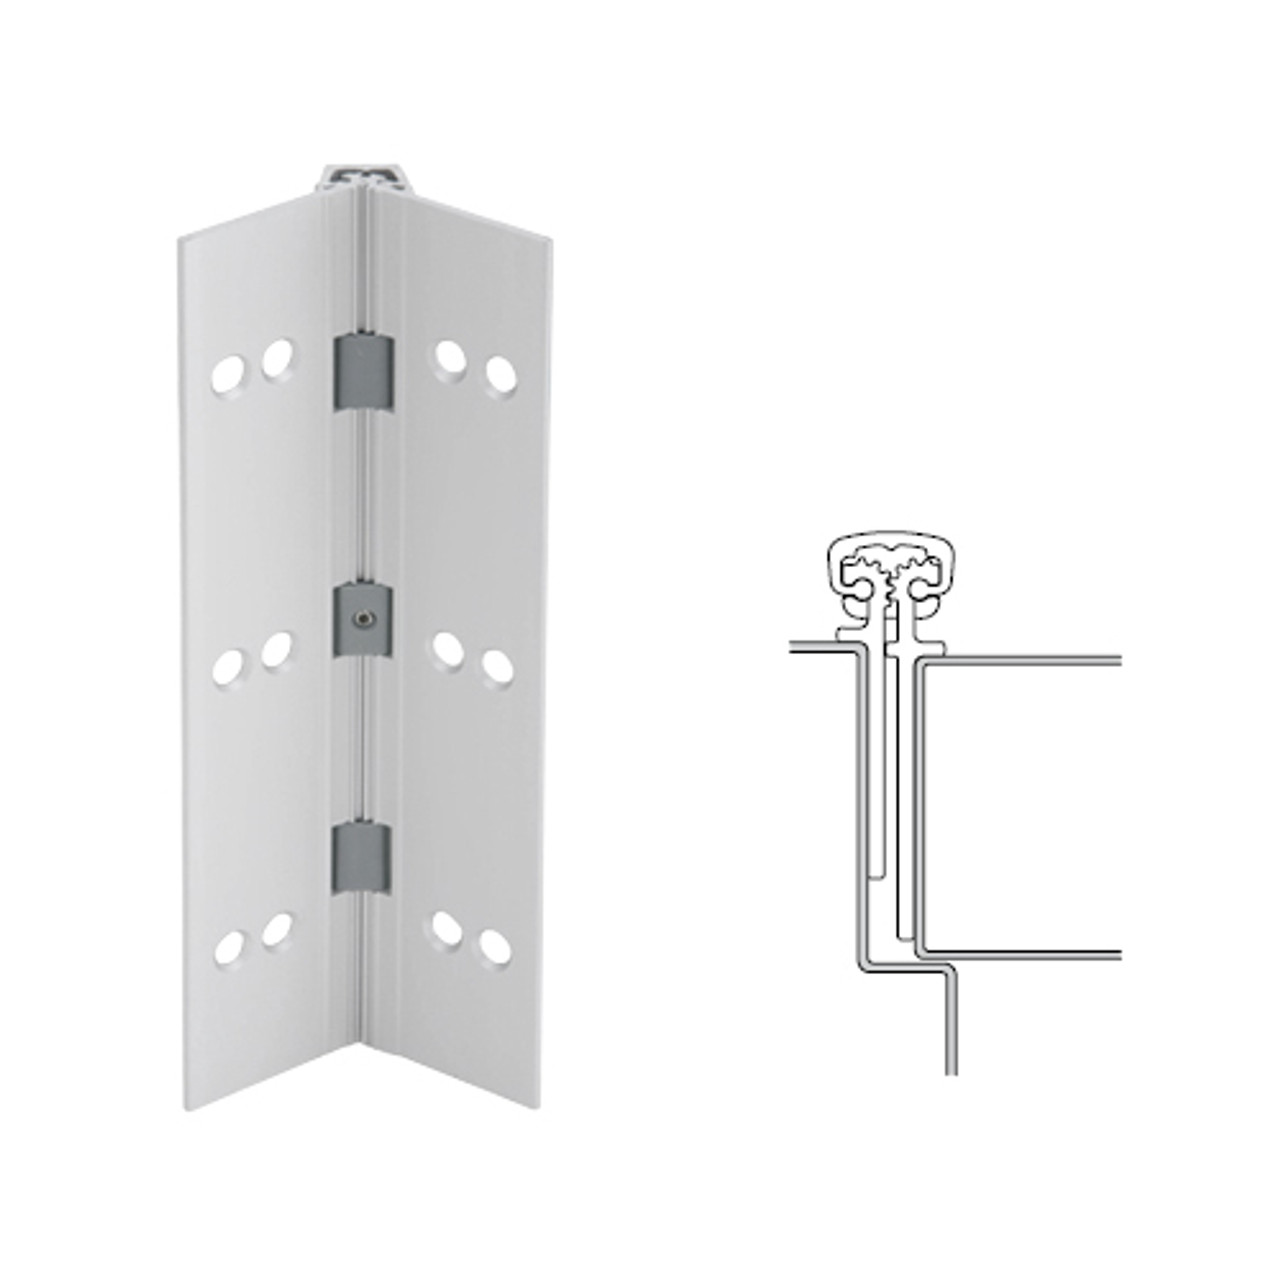 026XY-US28-120-TFWD IVES Full Mortise Continuous Geared Hinges with Thread Forming Screws in Satin Aluminum